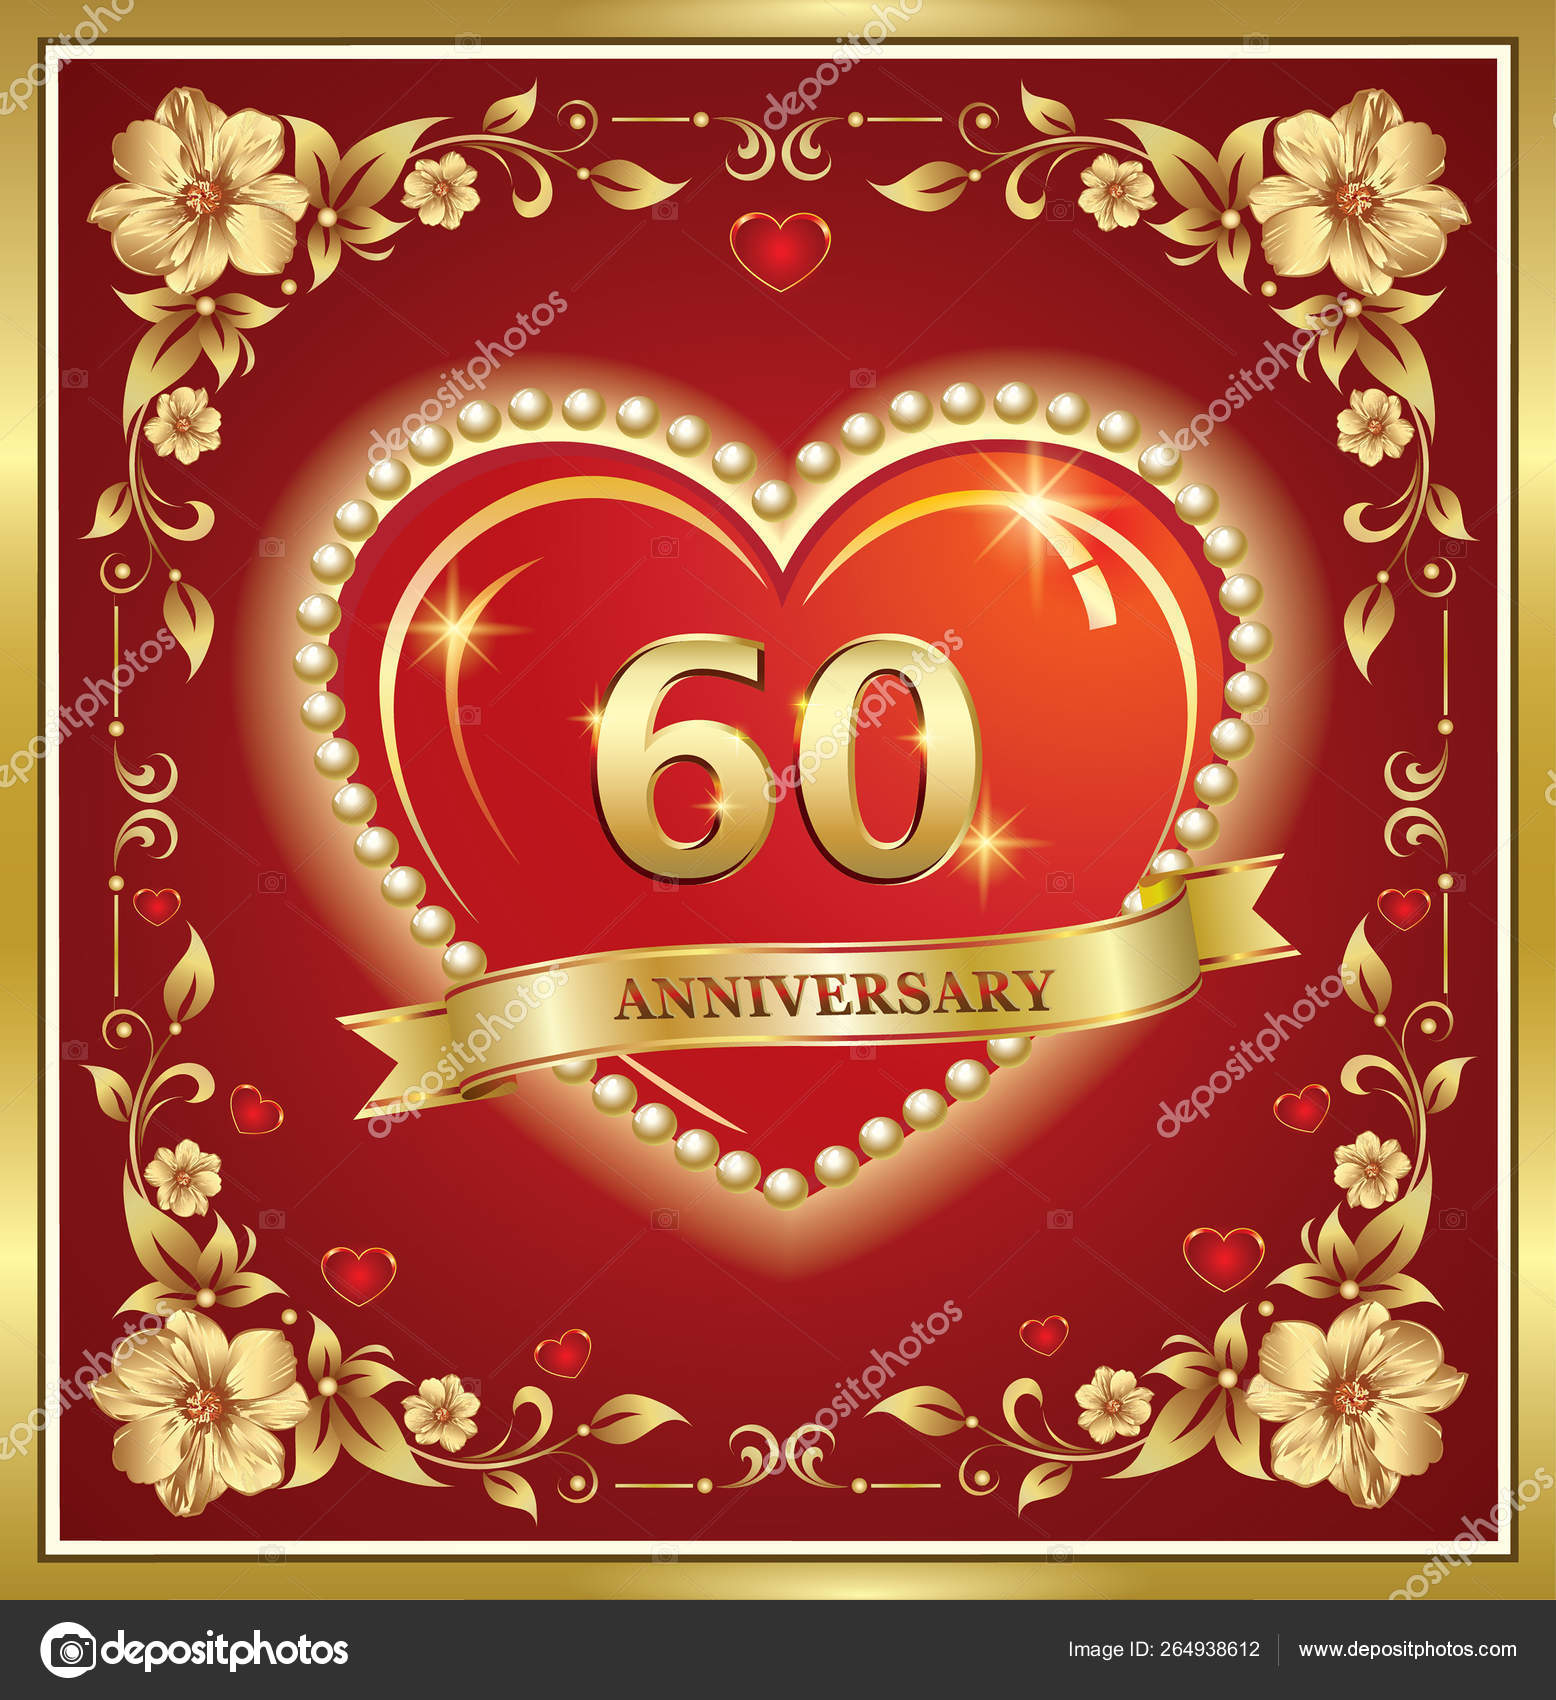 60 Years Anniversary Happy Birthday With Hearts And Ribbon Vector